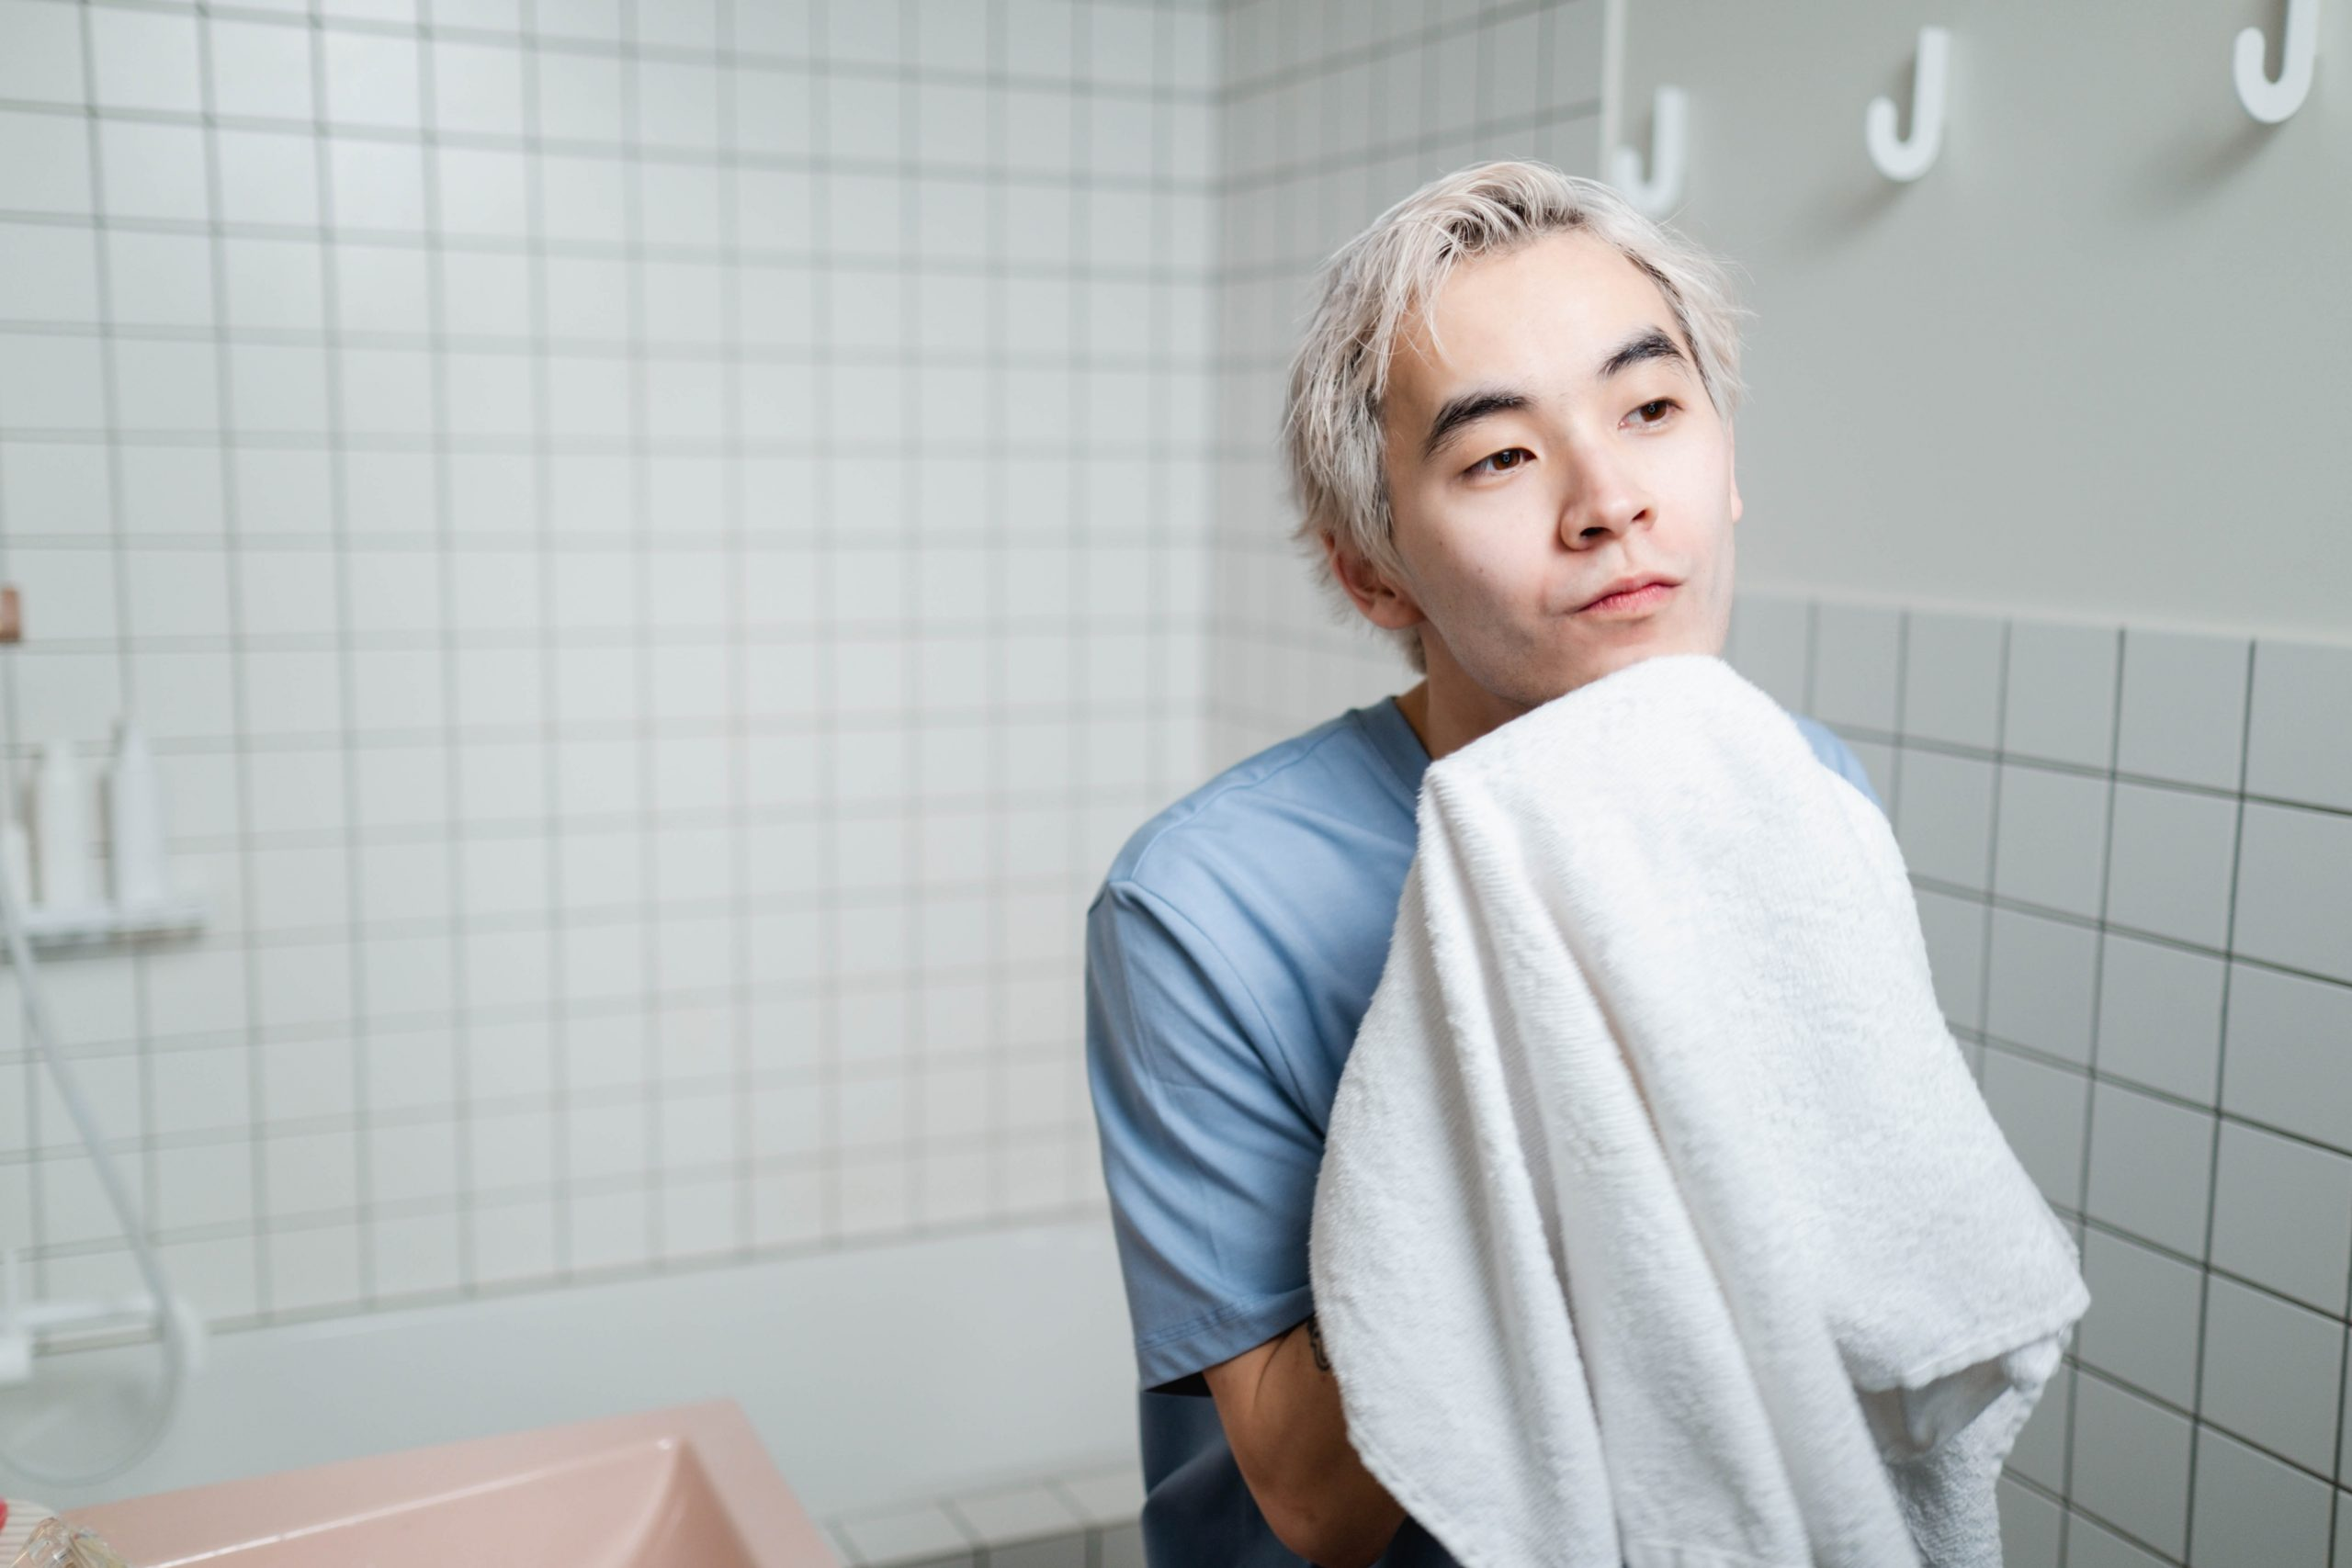 man wiping nose and face with a towel inside a comfort room